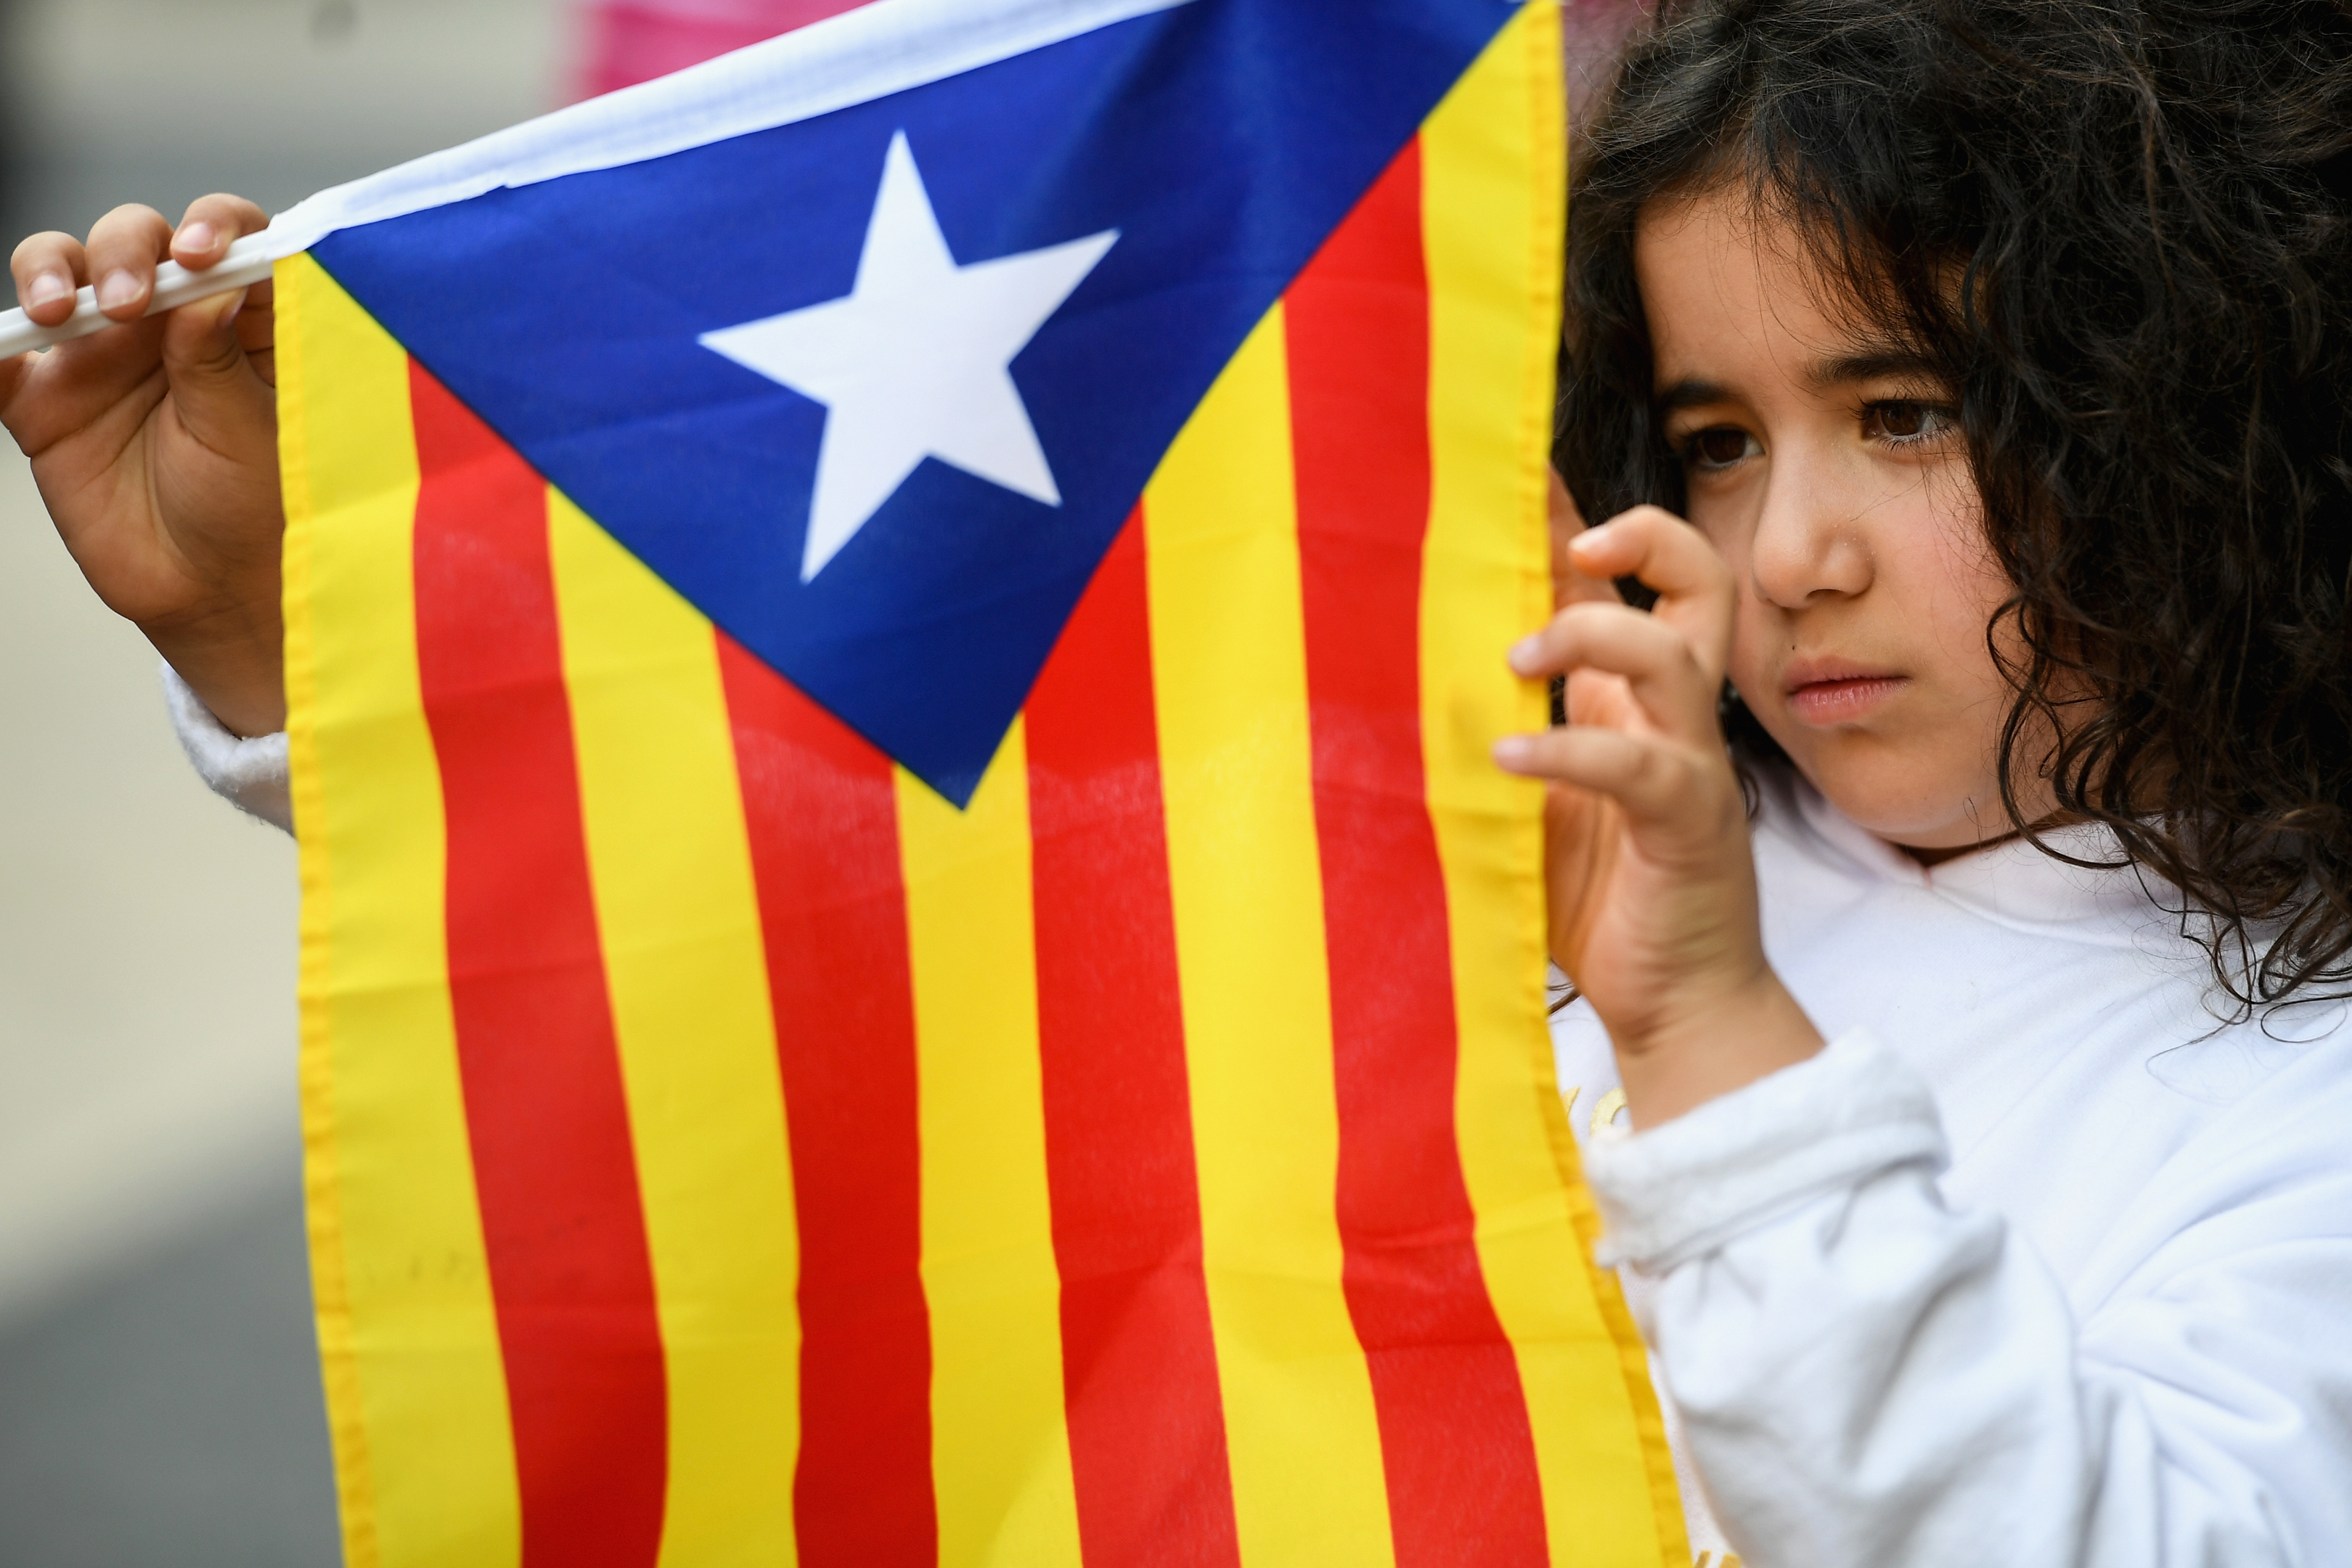 Catalan independence supporters gather outside of the Palau Catalan Regional Government Building on October 28, 2017 in Barcelona,Spain. (Jeff J Mitchell/Getty Images)